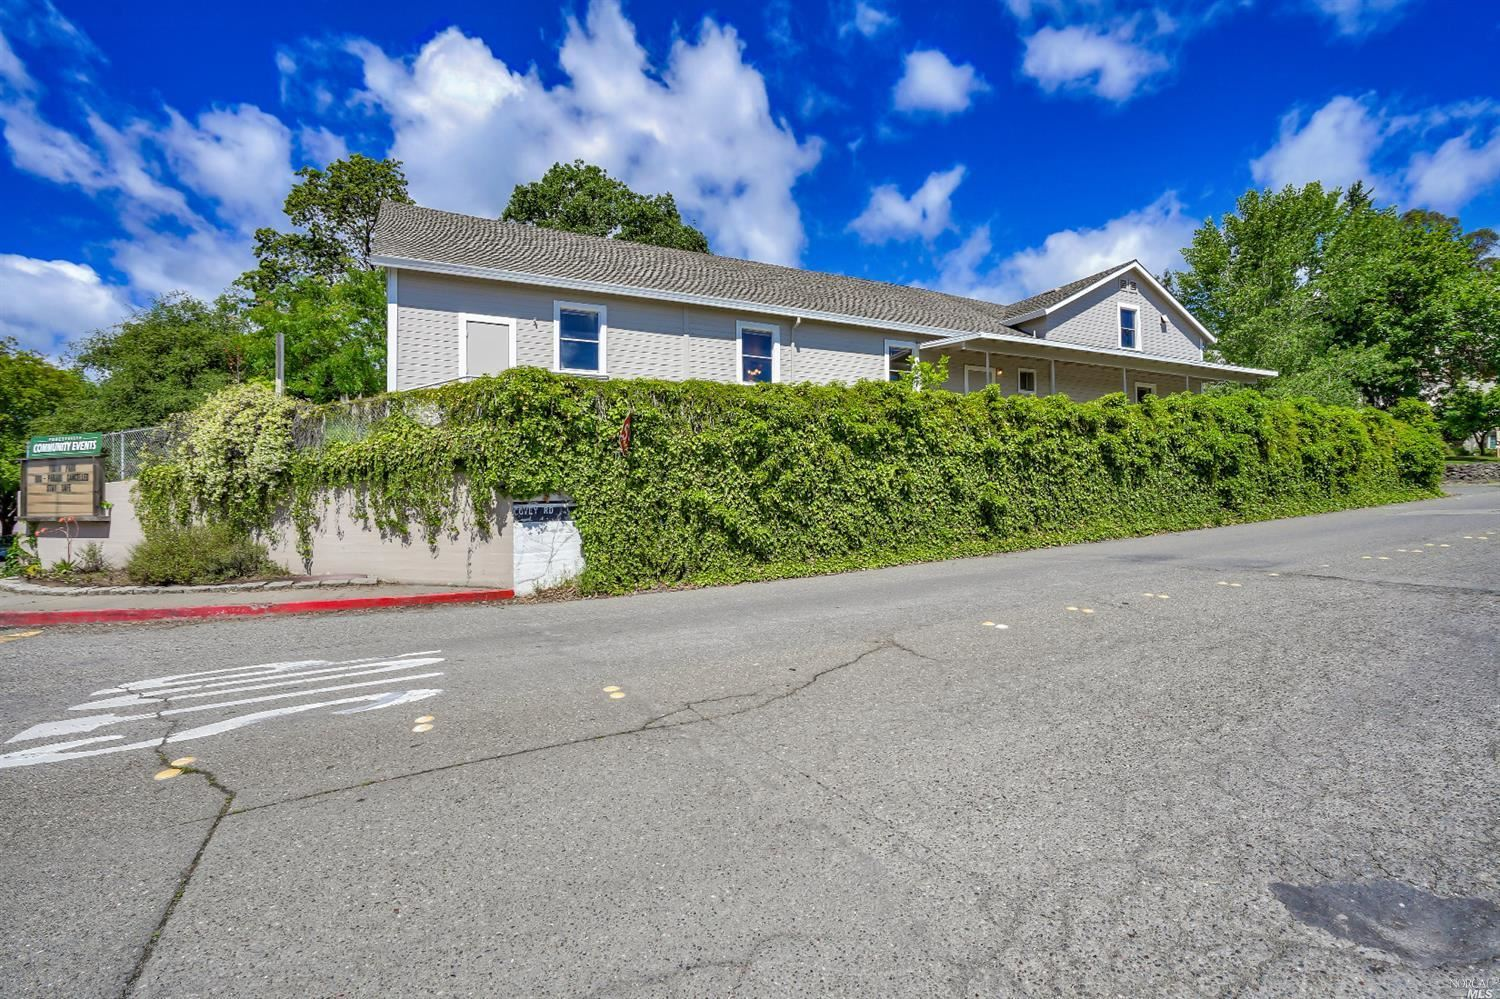 6530 Covey Road, Forestville, CA 95436 - #: 22011017